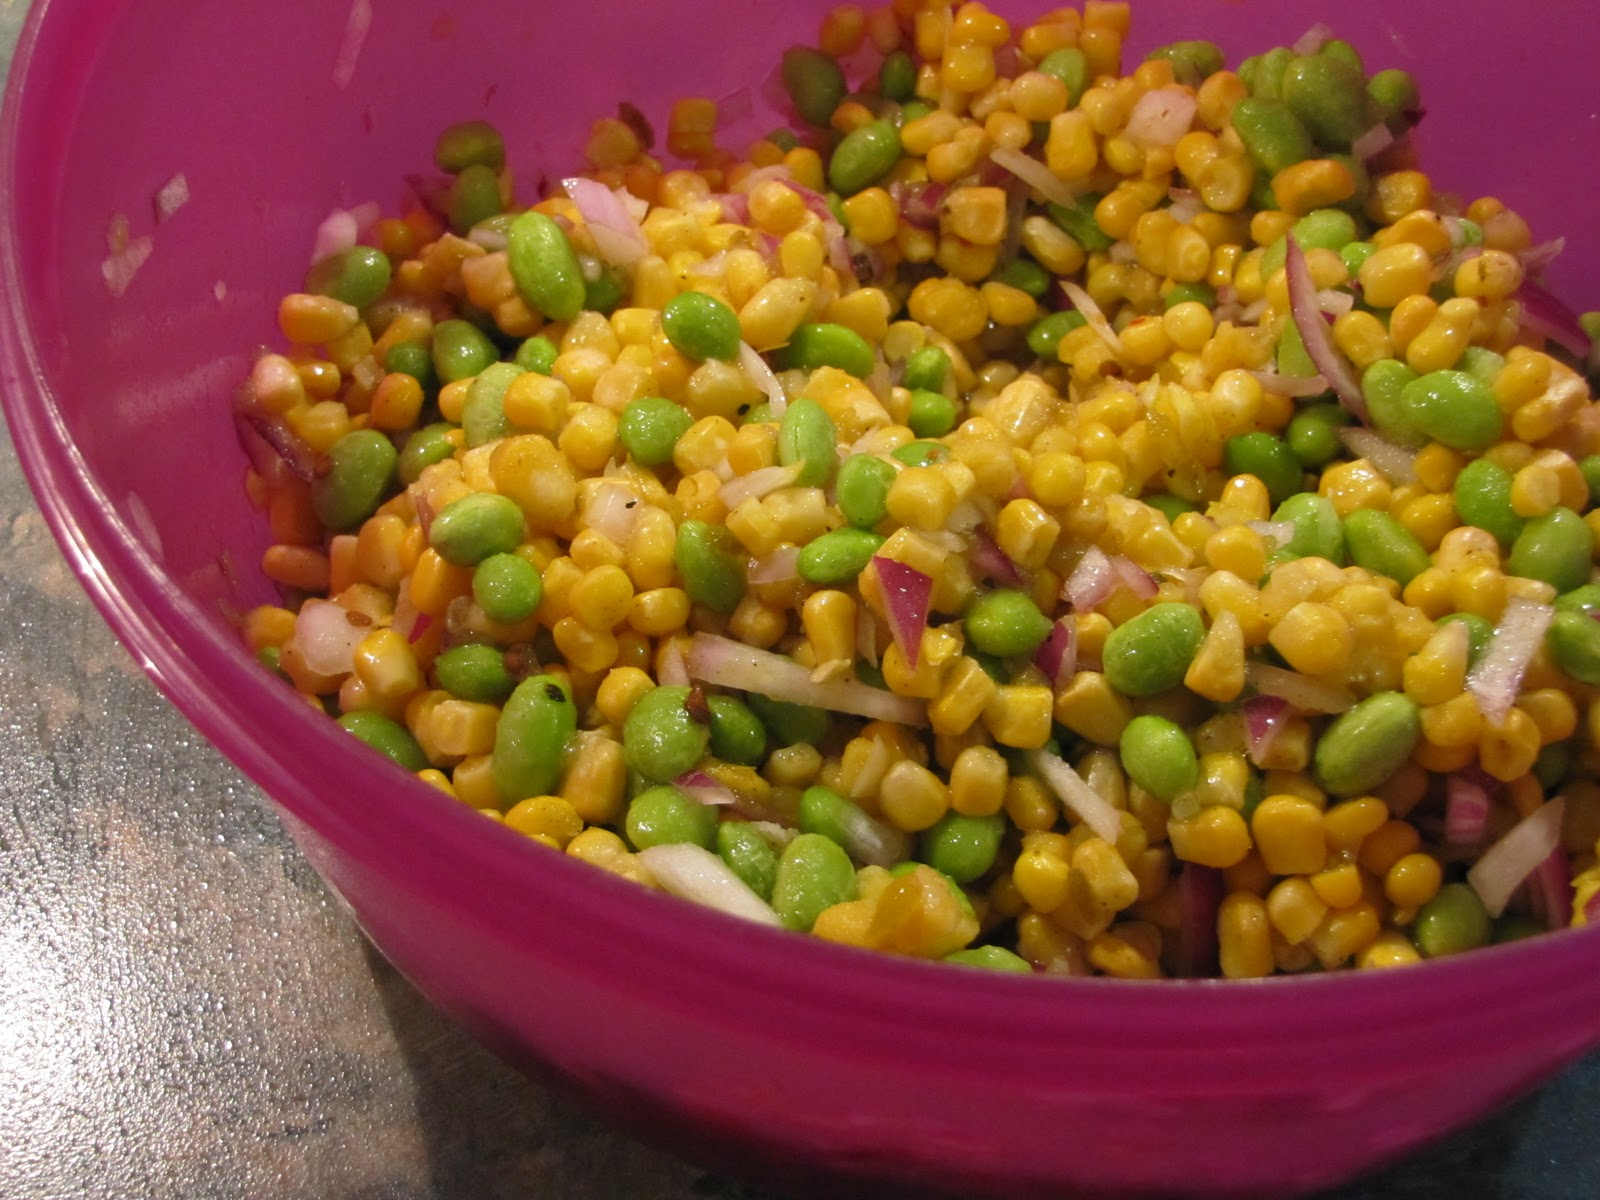 Food for Fuel: Corn, Edamame, and Avocado Salad